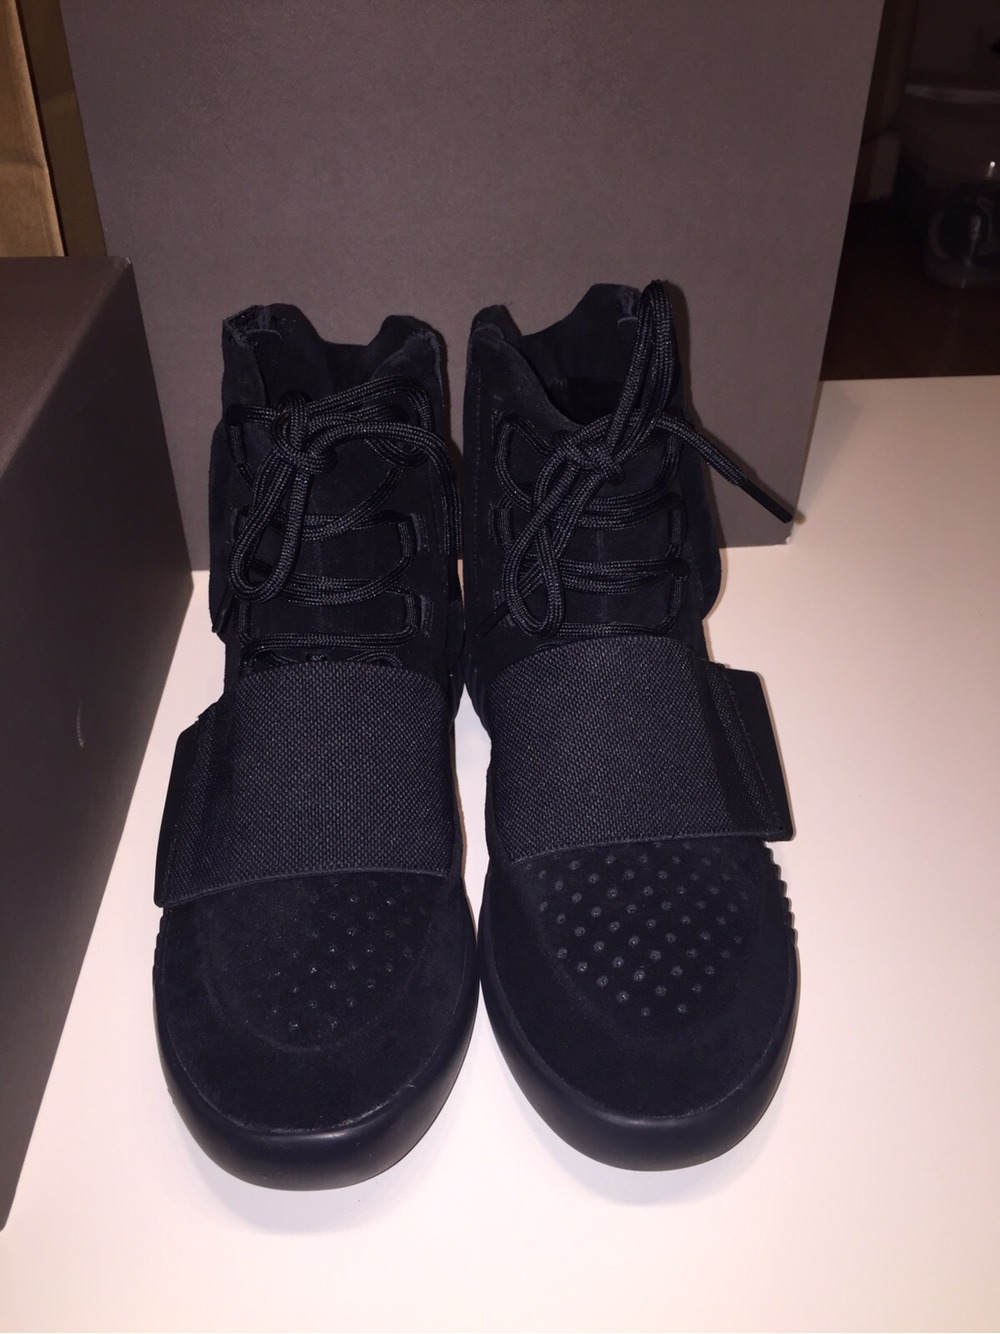 best cheap d7810 dce53 netherlands yeezy boost 750 all black ops 77f7a 4fe12